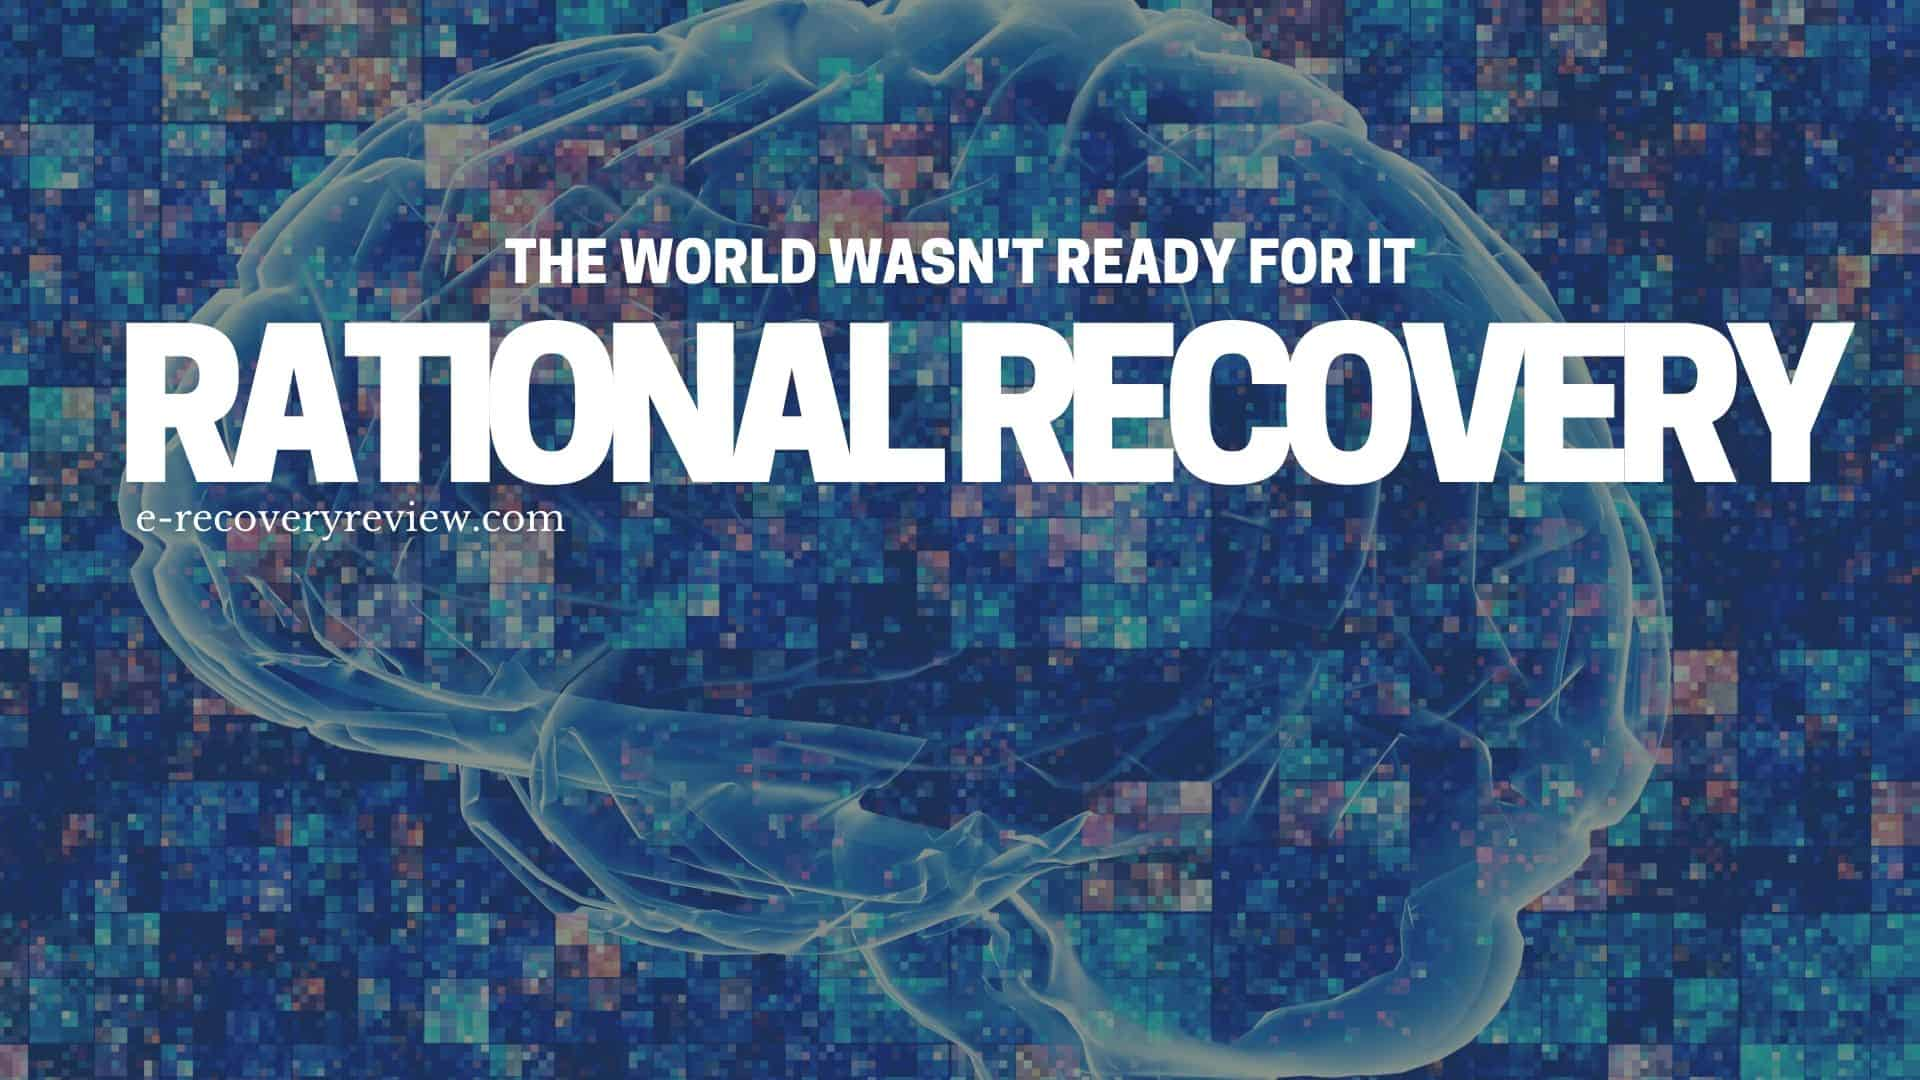 rational recovery review